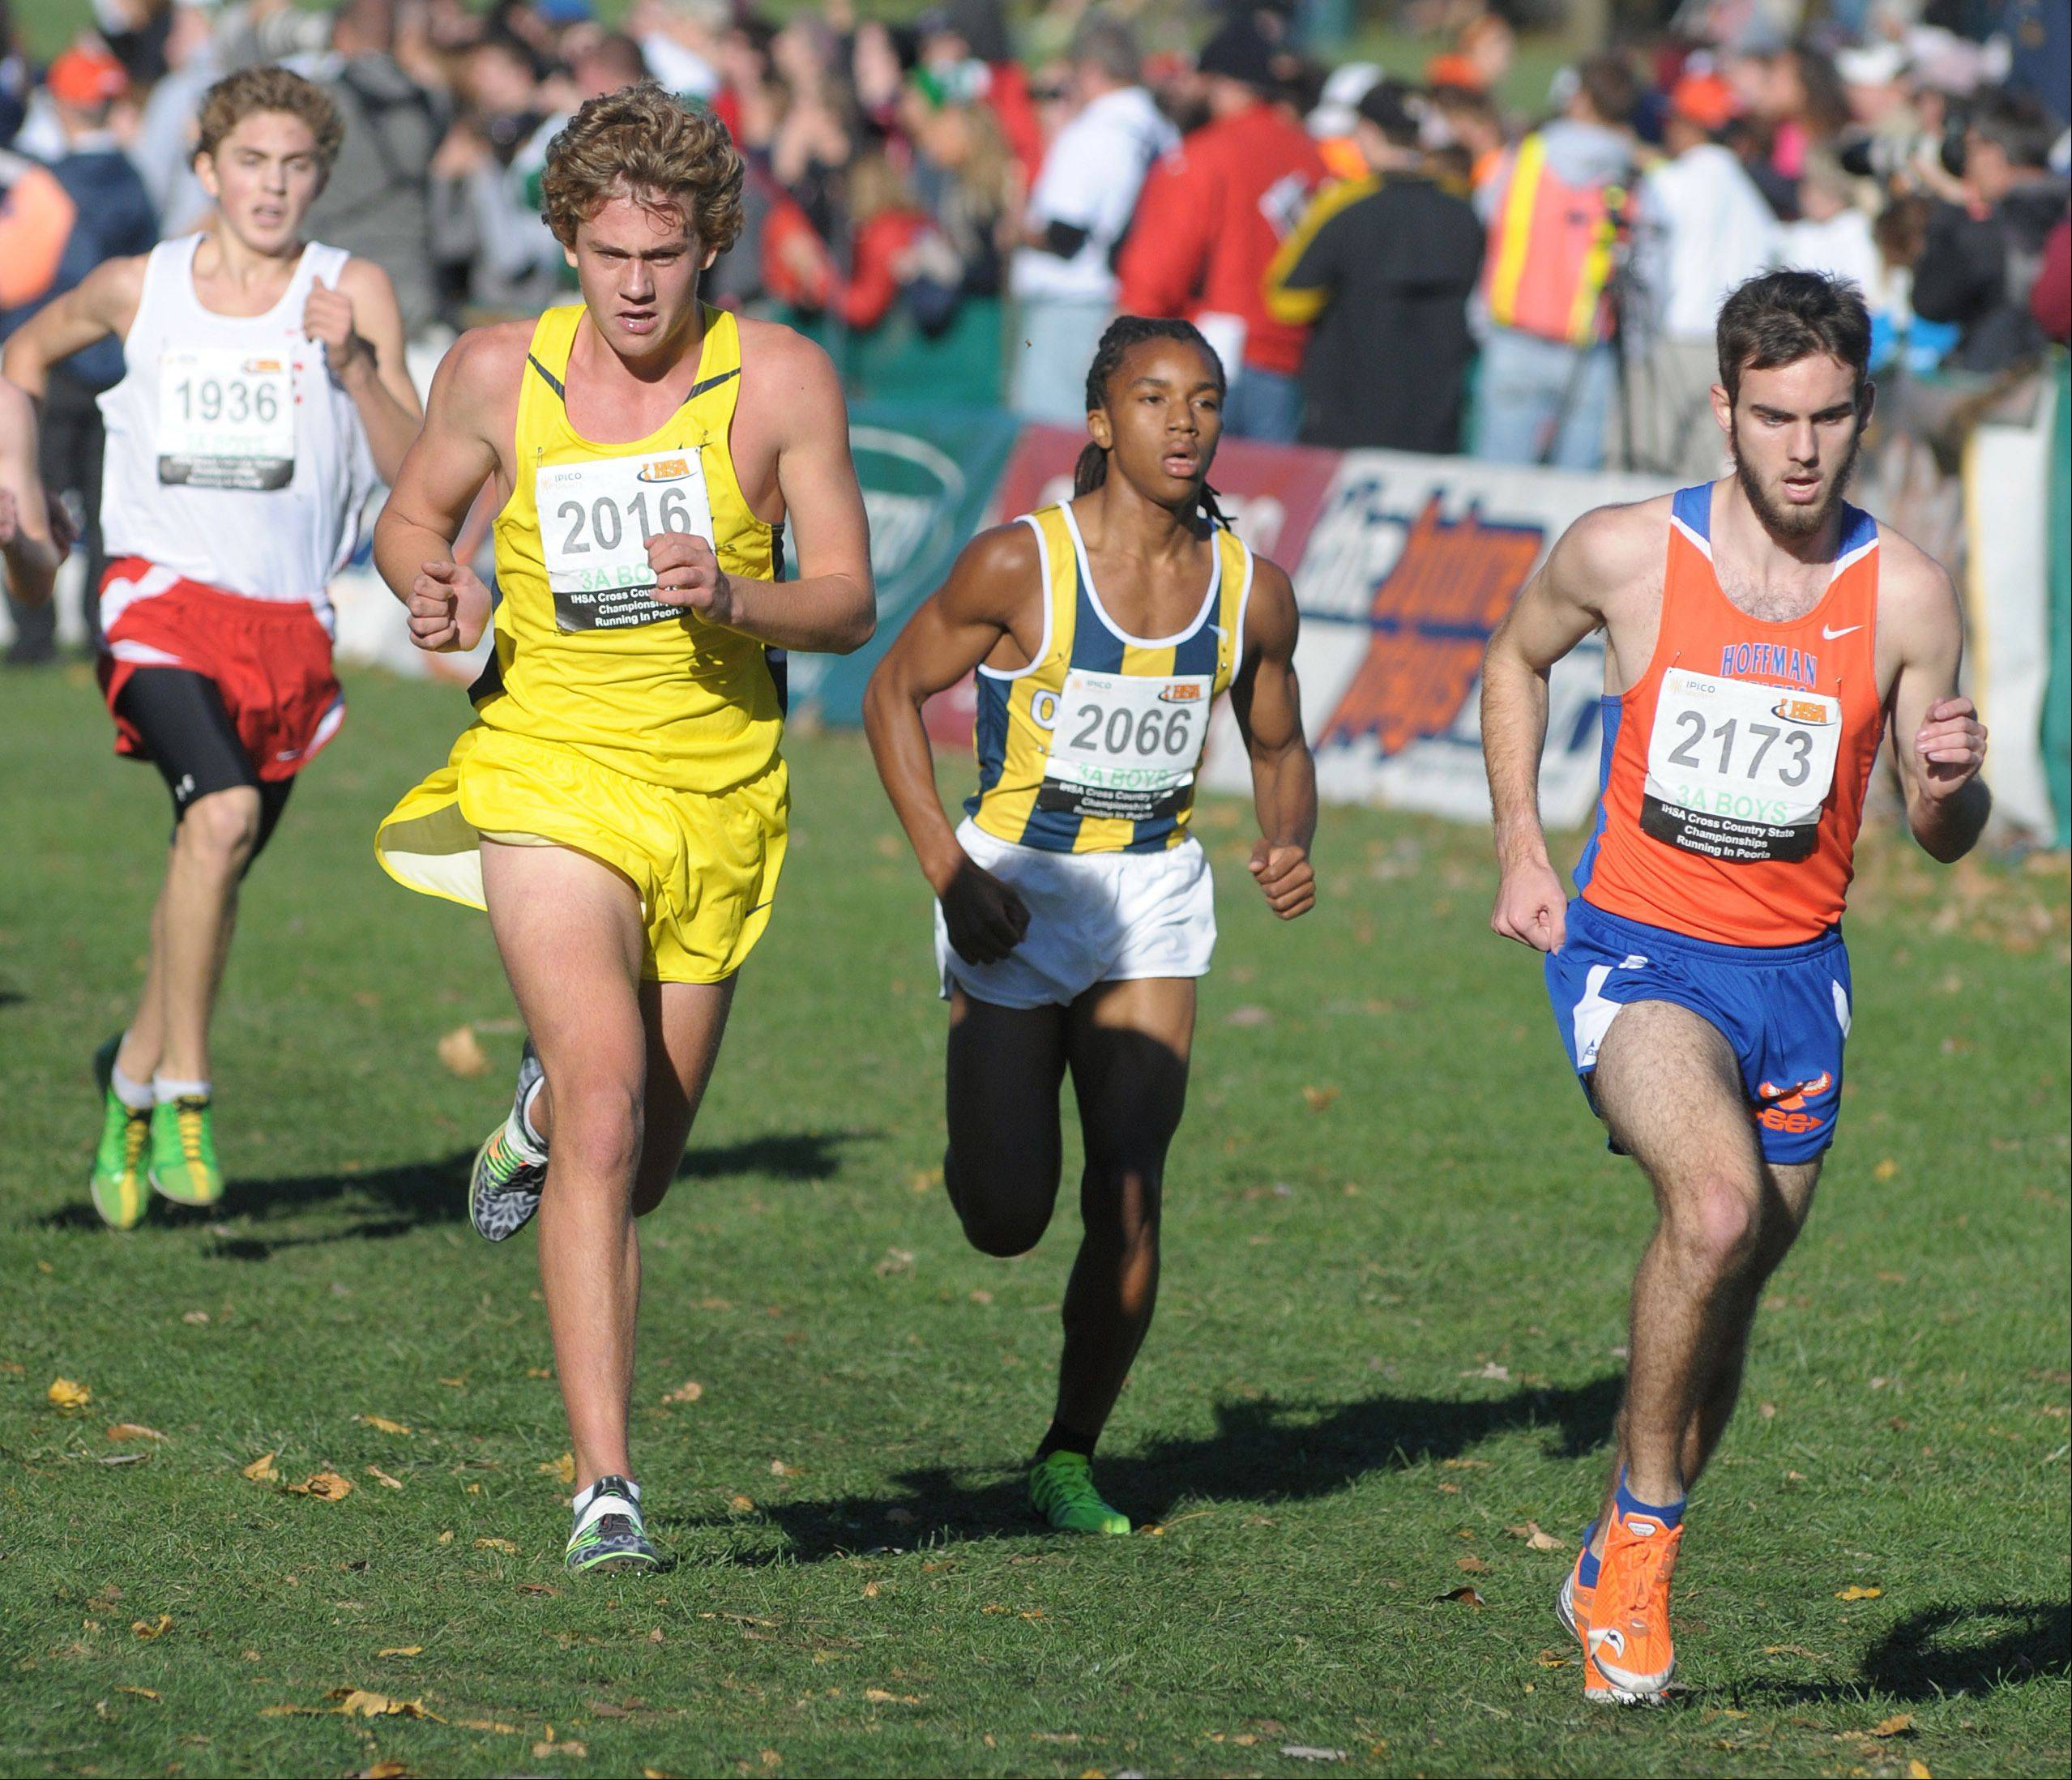 Neuqua Valley's Nick Bushelle (2016) and Hoffman Estates' Billy Thomas (2173) compete in the Class 3A IHSA cross country state final at Detweiller Park in Peoria on Saturday, November 9.